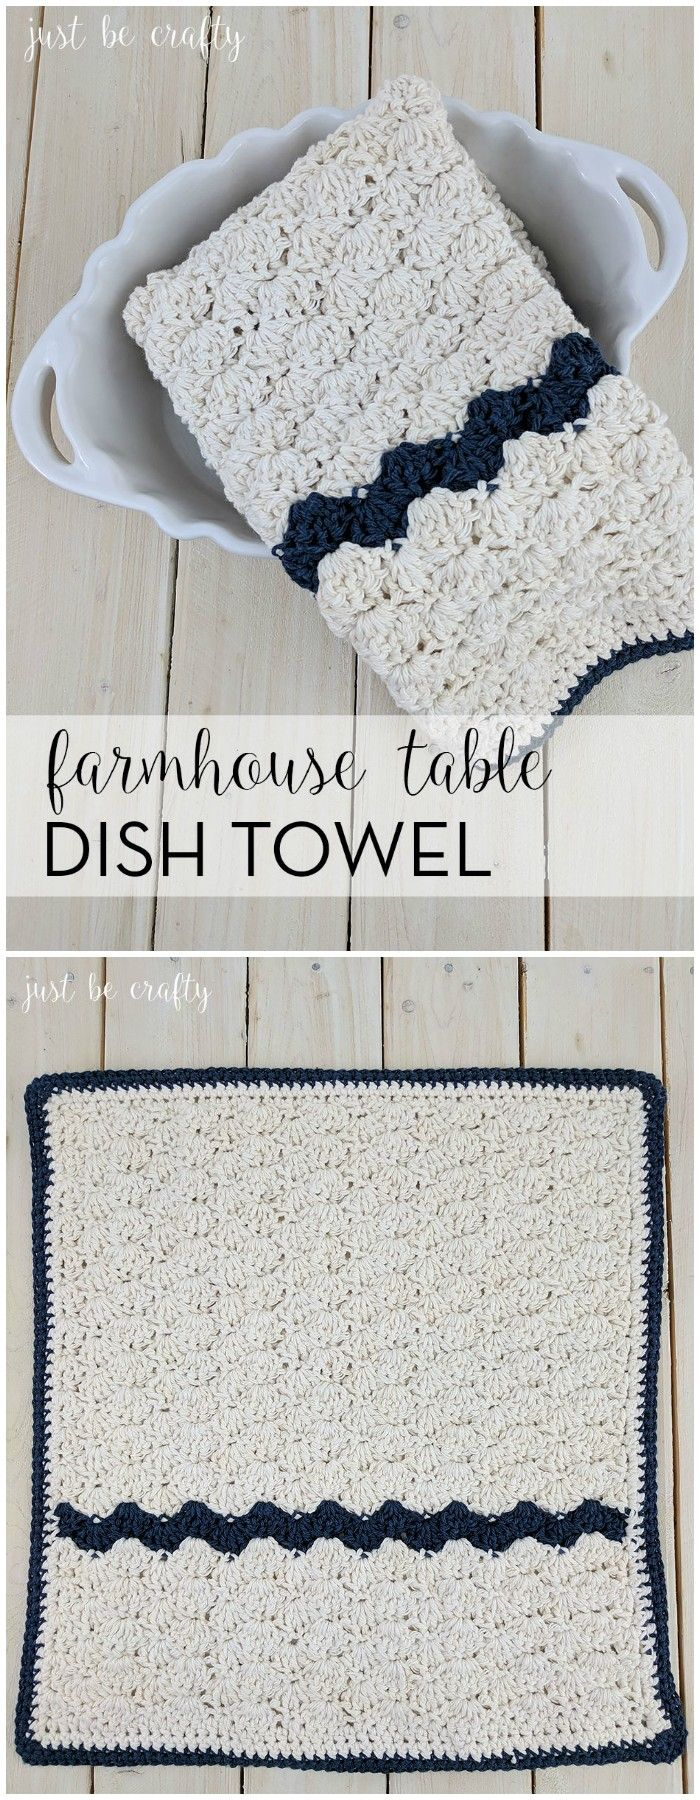 I have rounded up some of the best and interesting free  #Crochet #Dishcloth patterns for your home.Crochet Farmhouse Table Dish Towel Pattern